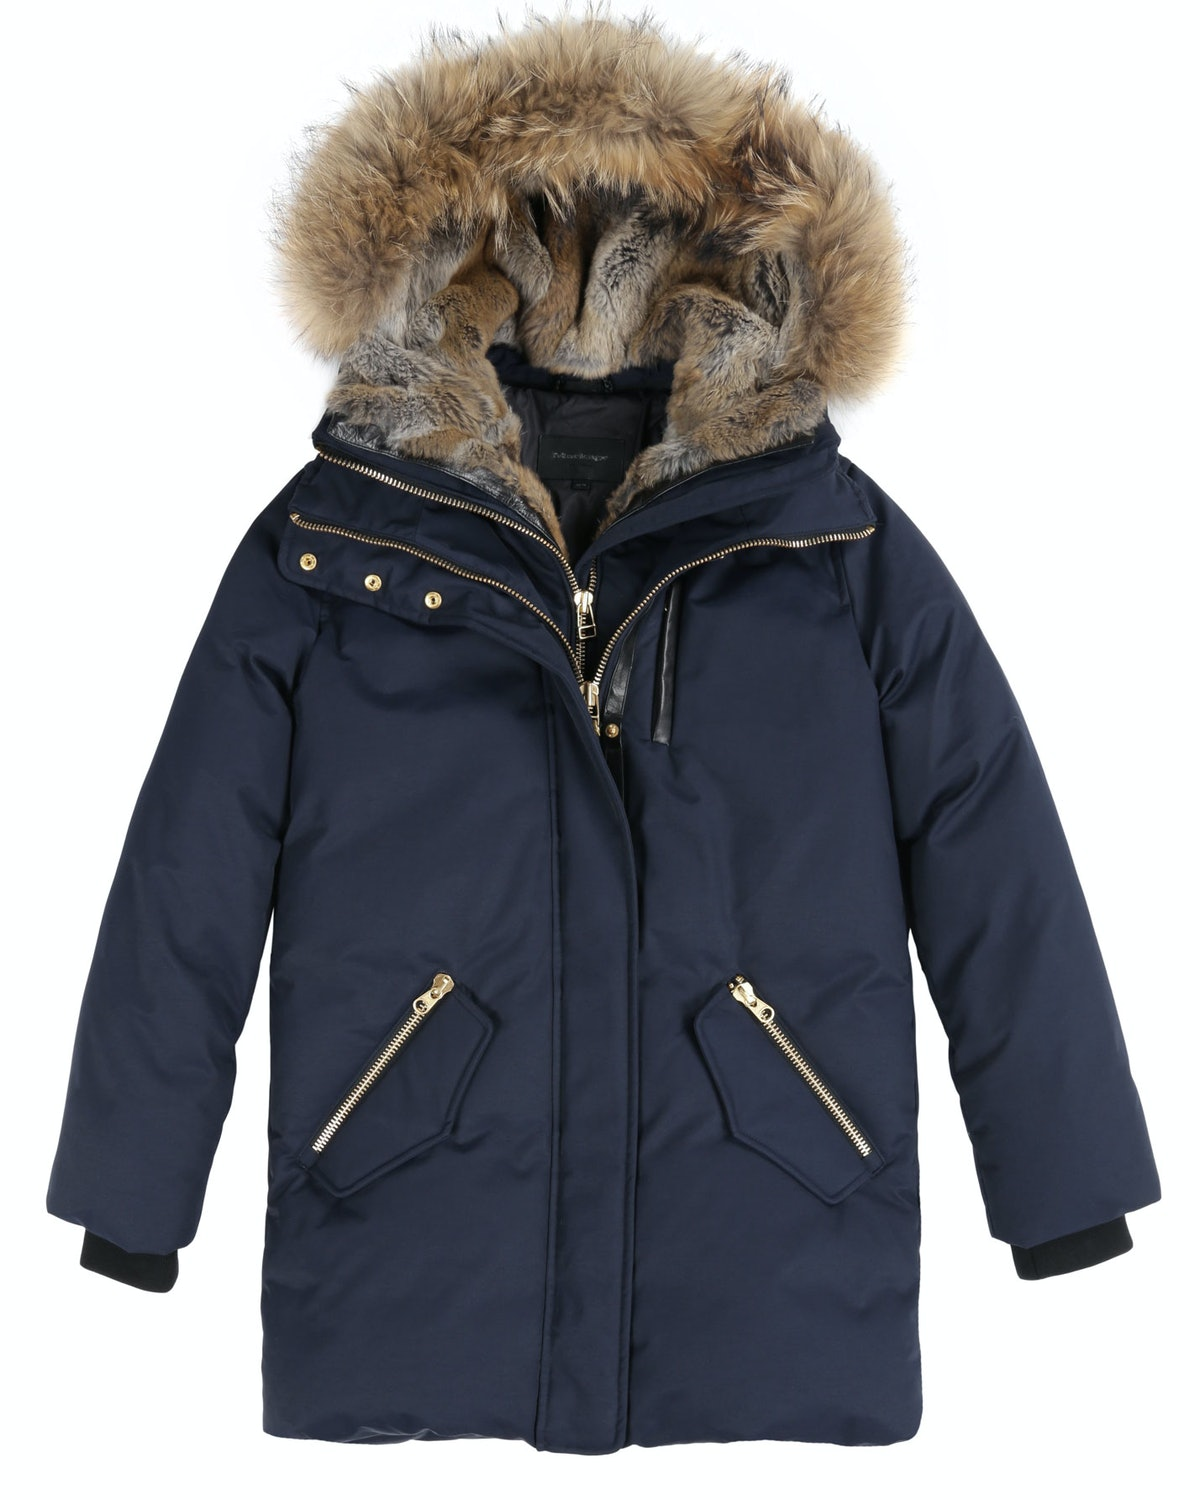 In the market for a stadium coat? I ran into two people this week (not including Madonna) that swore this one is super warm!       *Mackage navy down parka with natural fur trim on hood, $890, [mackage.com](http://www.mackage.com/us/en/marla-f3-navy-down-parka-with-natural-fur-trim-on-hood)*